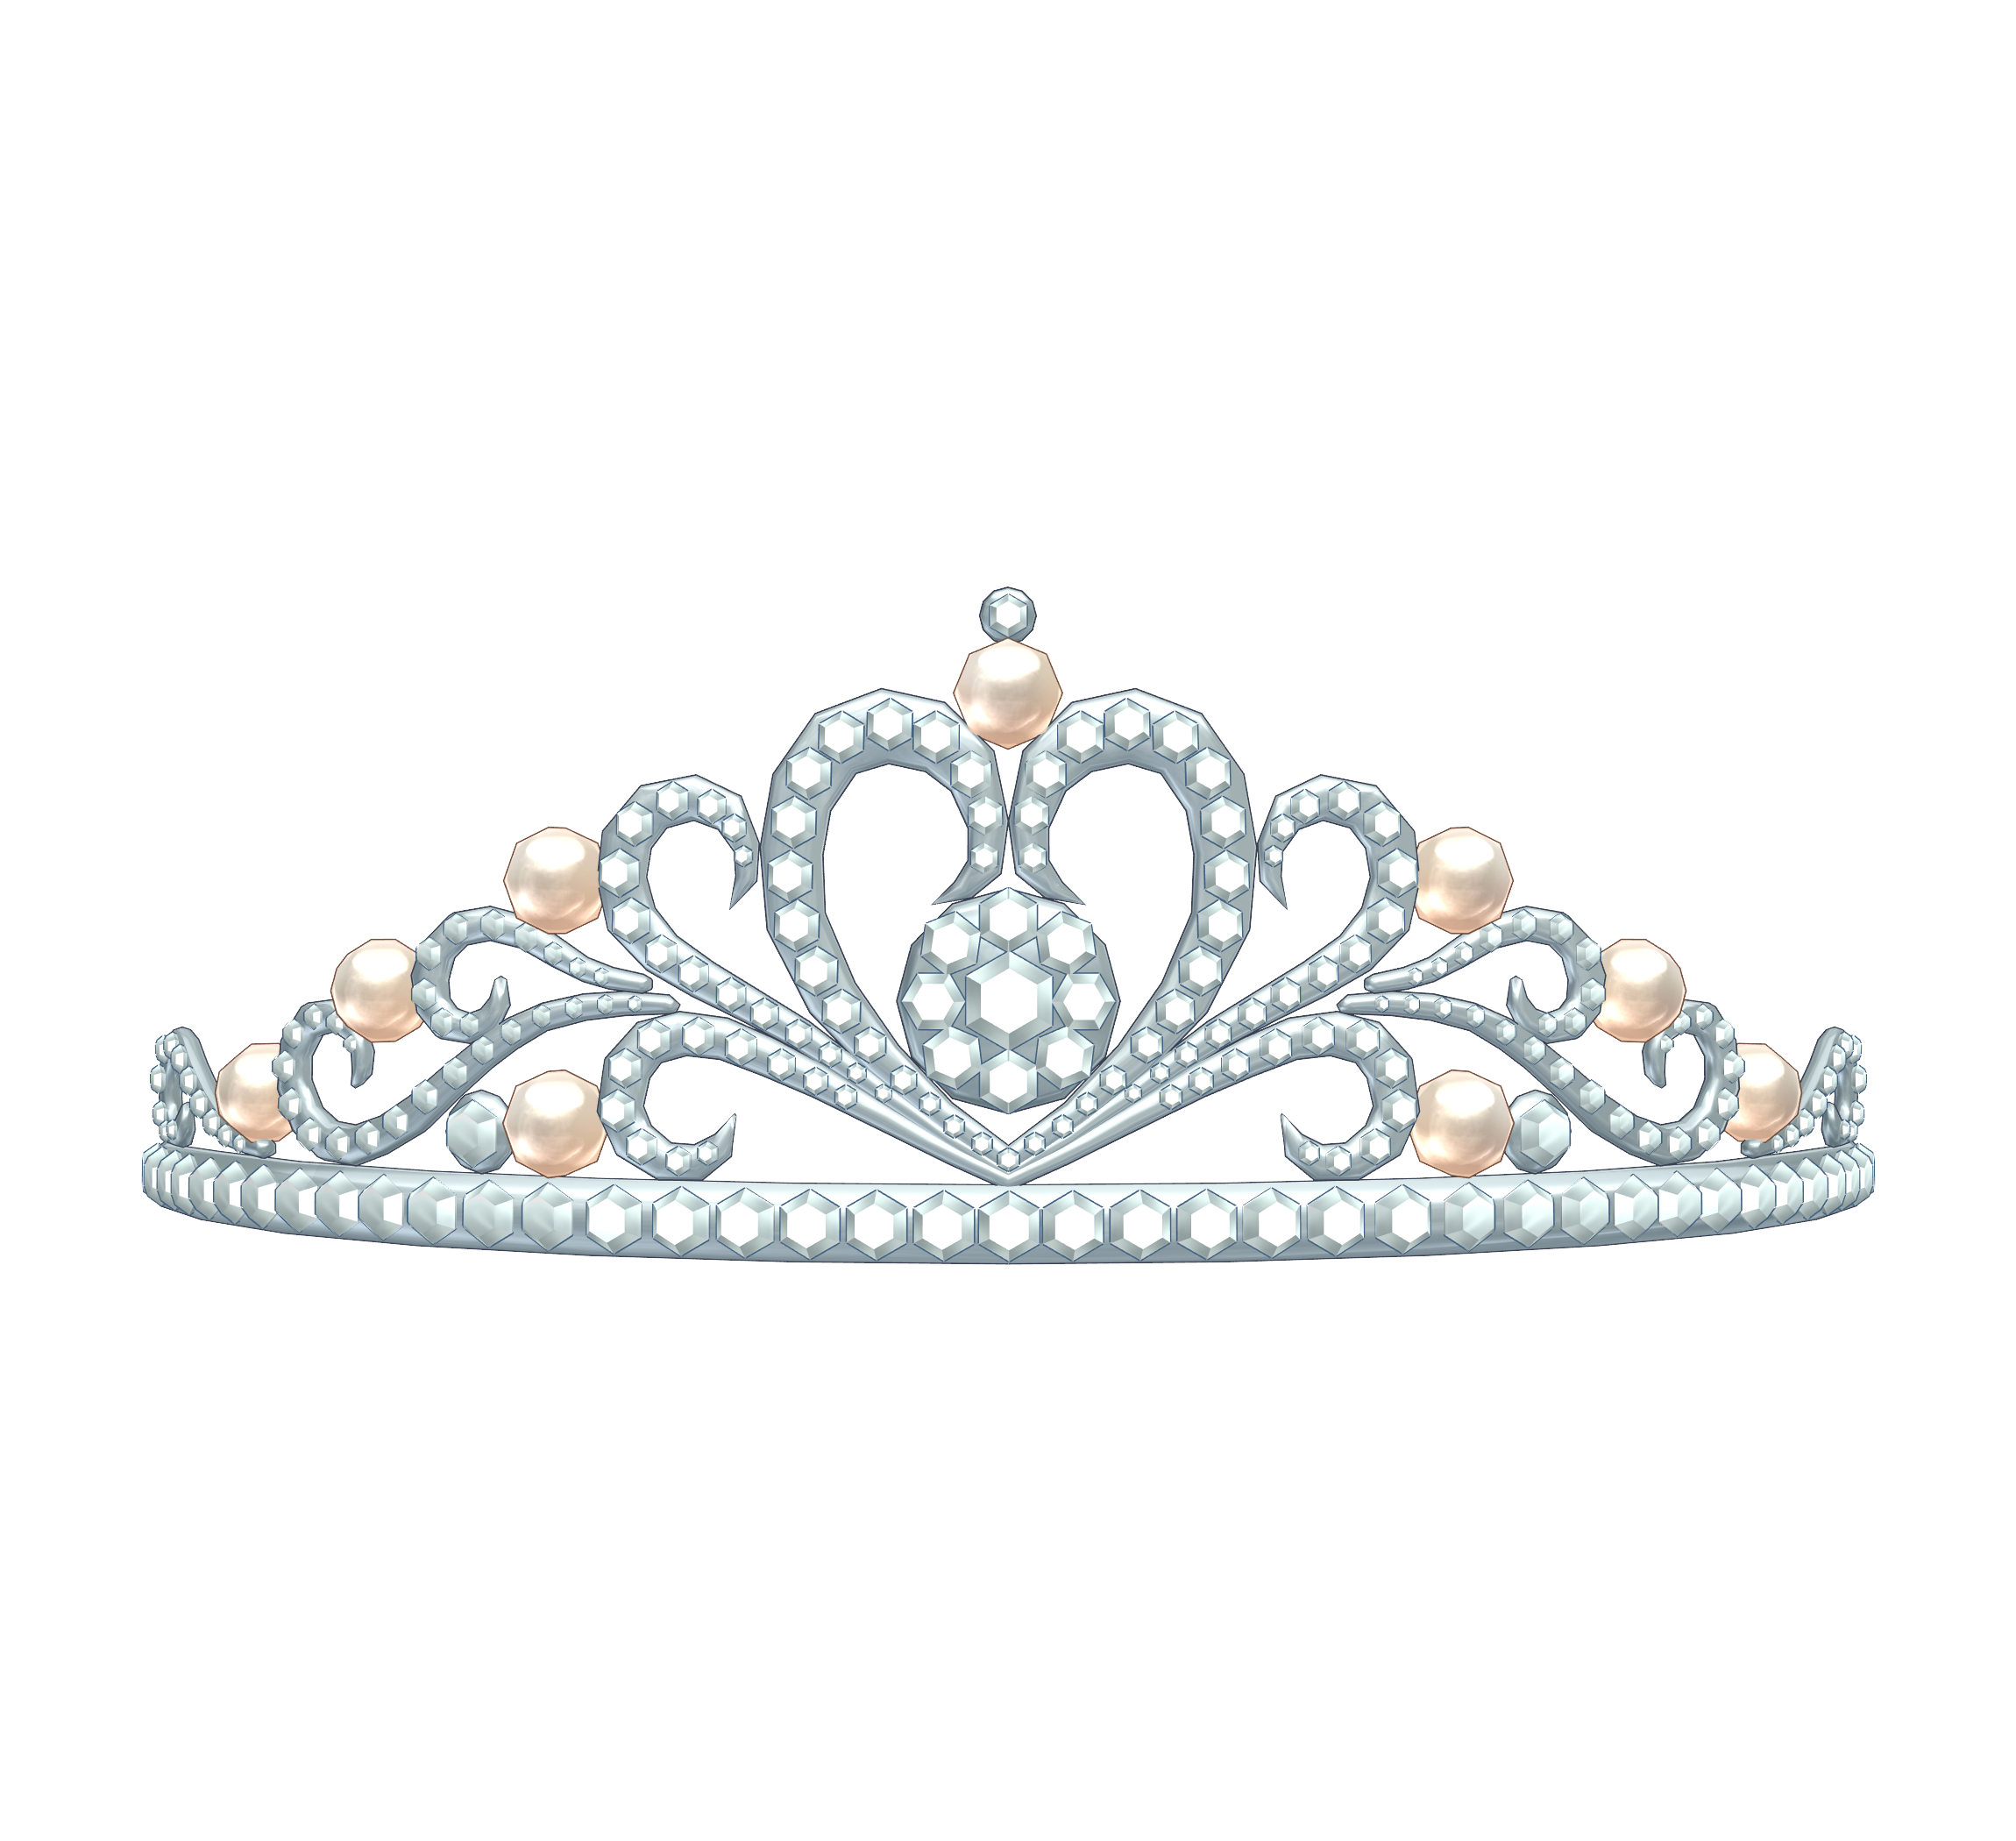 Silver Princess Crown Png Crown Clip Art Jewelry For Her Crown Png